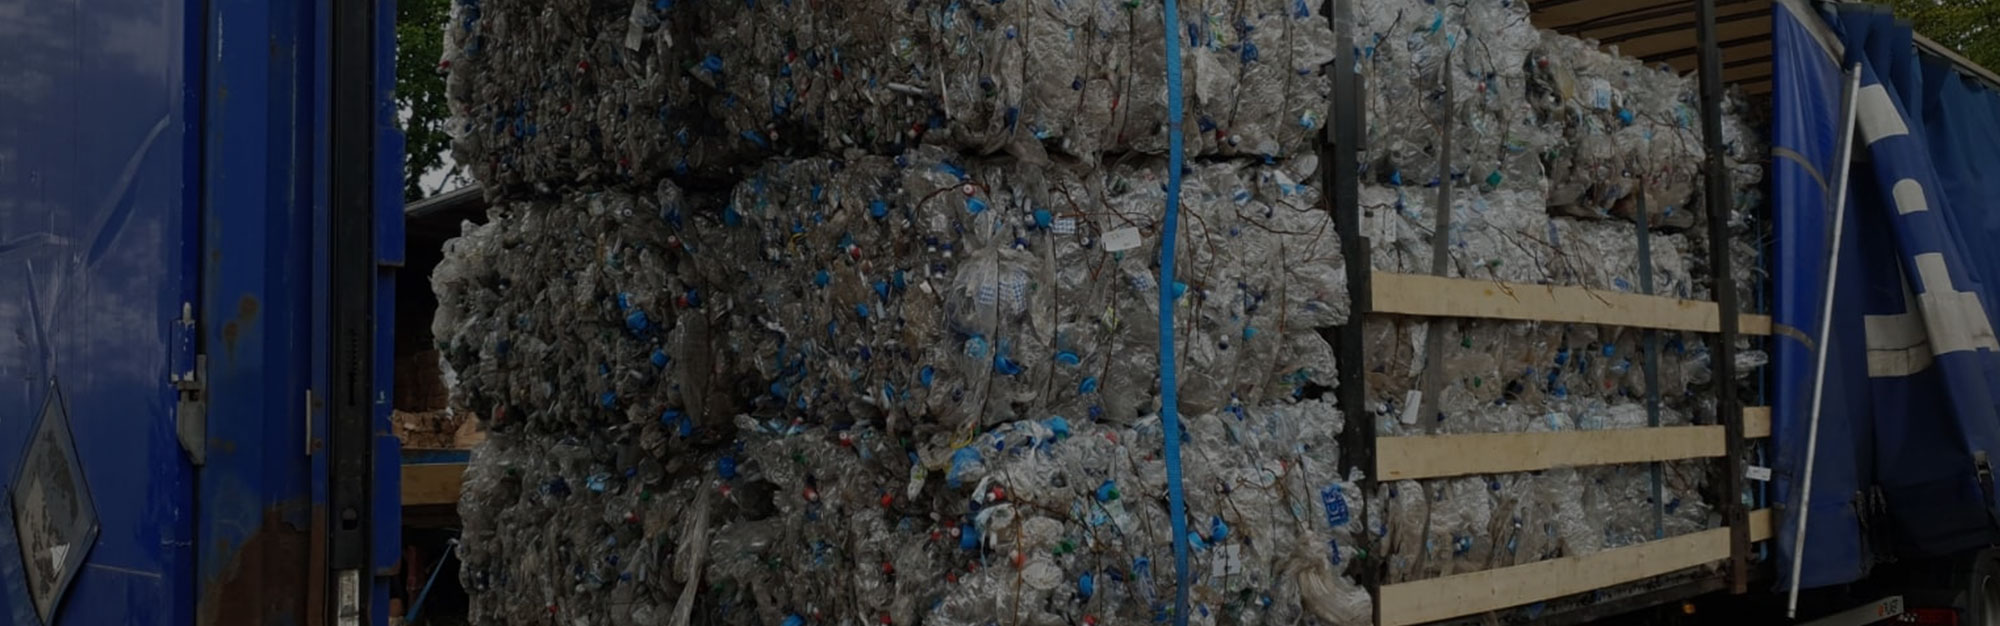 plastic recycling service wales